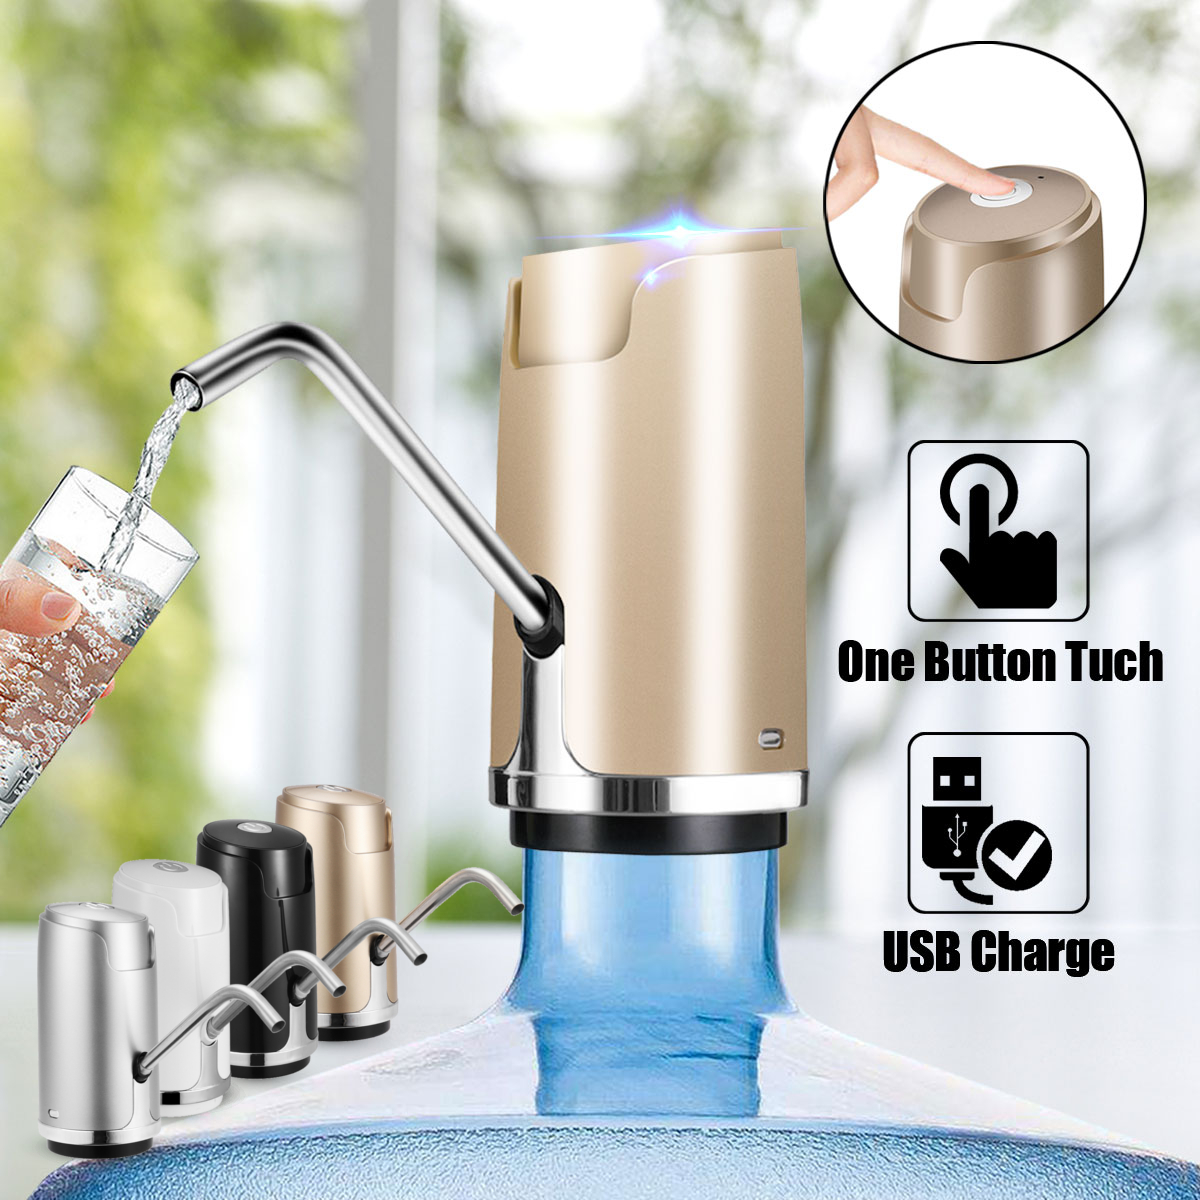 Automatic Wireless USB Rechargeable Electric Gallon Bottle Water Pump Drinking Pure Water Dispenser Bottle Switch 1800mah electric water dispenser portable gallon drinking bottle switch smart wireless water pump water treatment appliances